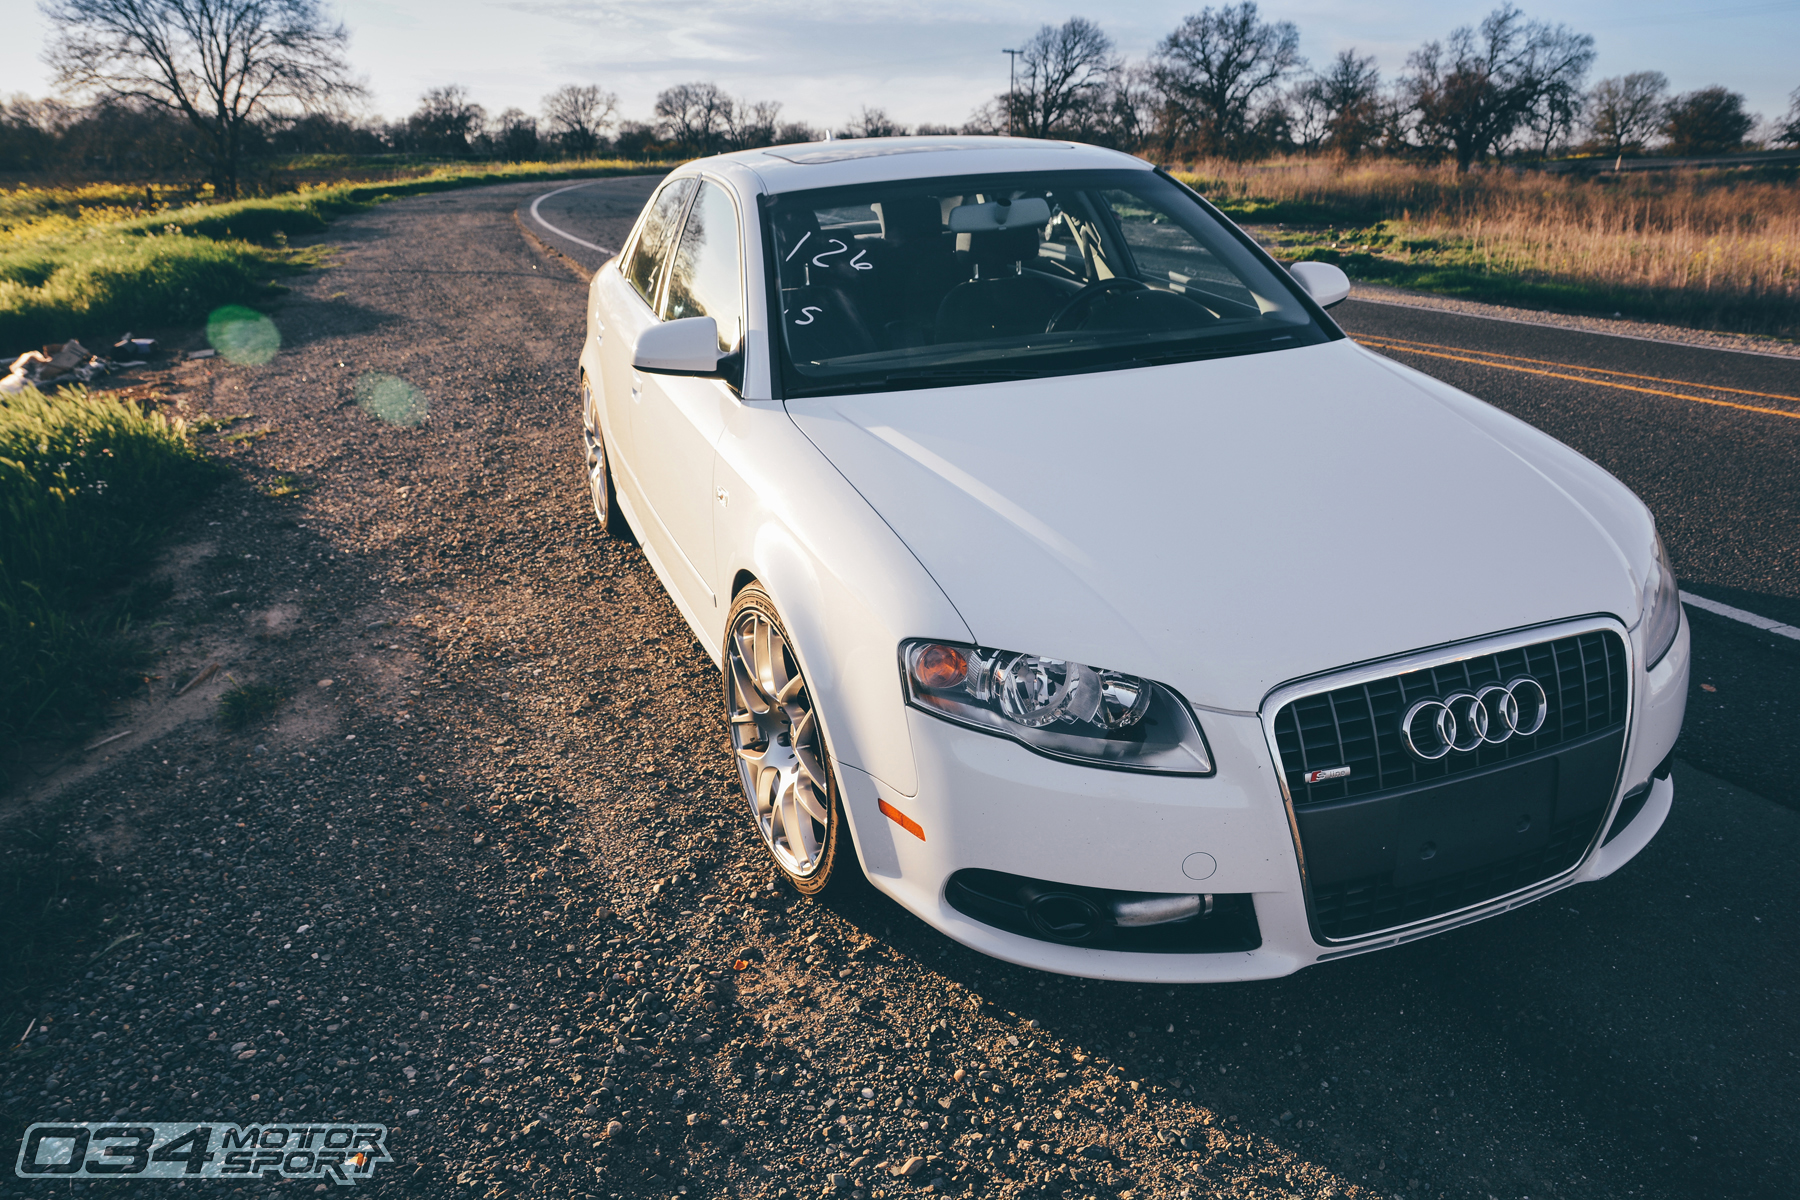 Best B7 Audi A4 2 0T FSI Upgrades - 034Motorsport Blog